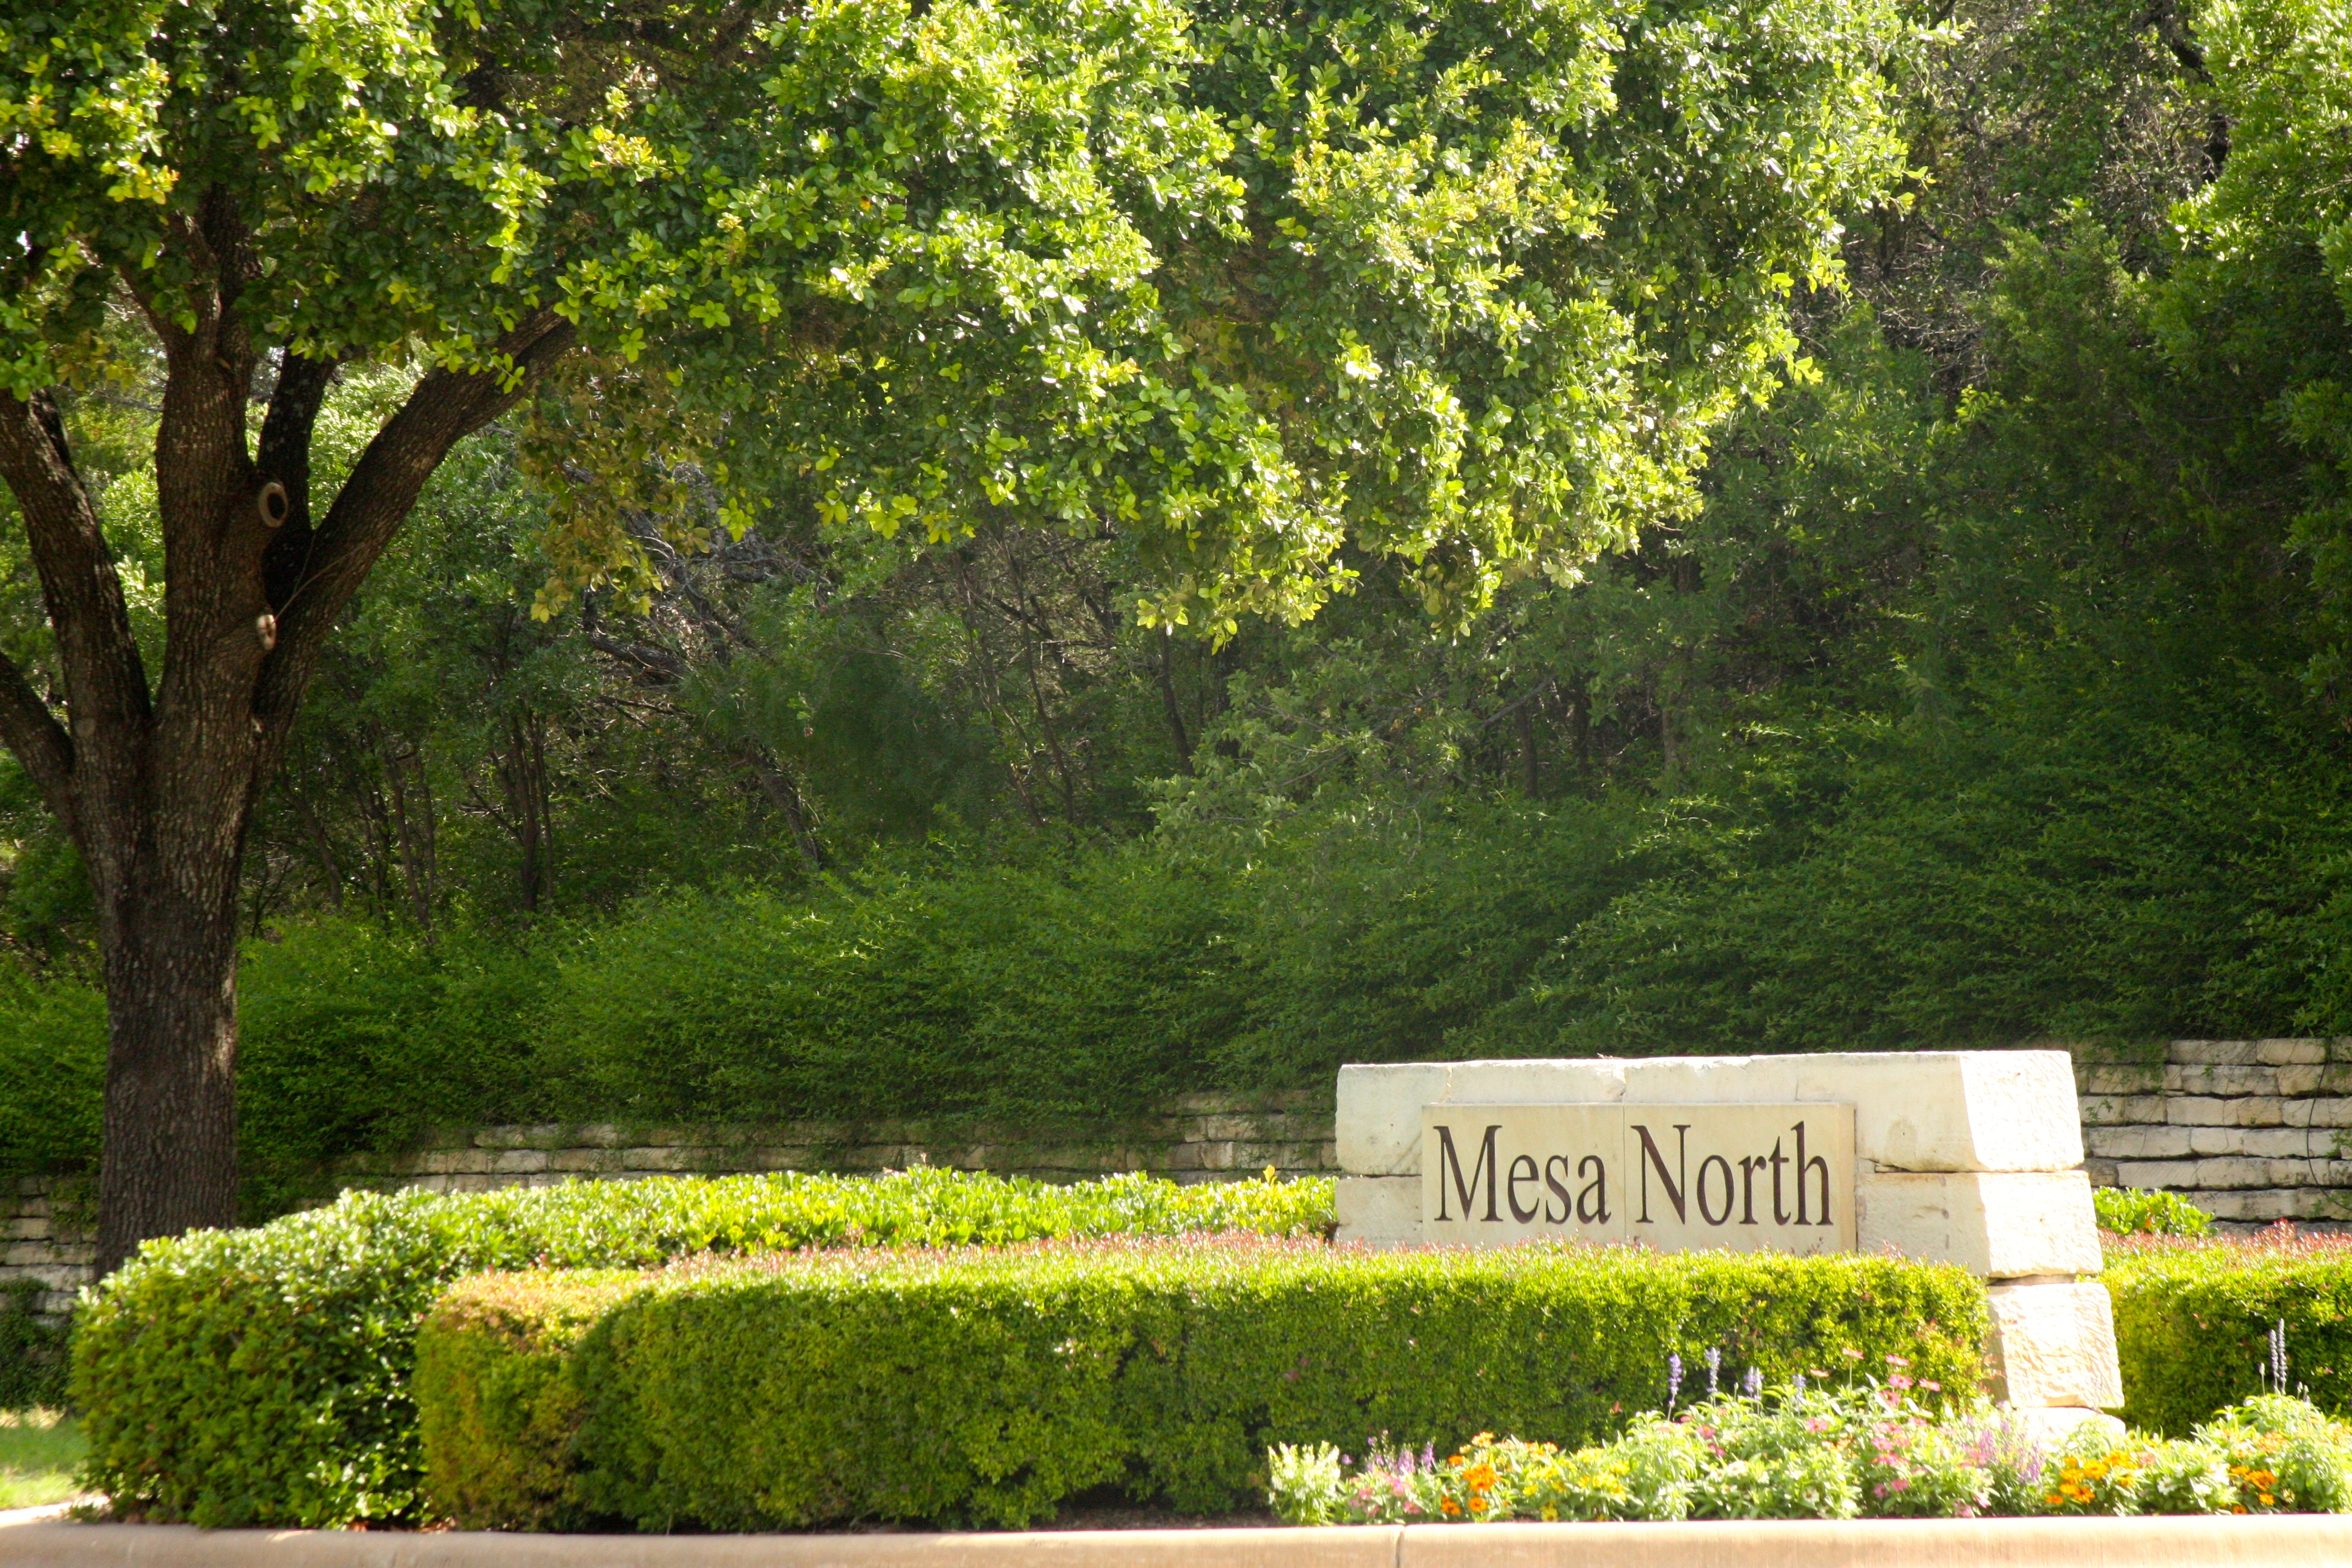 Homes for sale Mesa North Steiner Ranch, Austin Texas Real Estate, Gene Arant Team